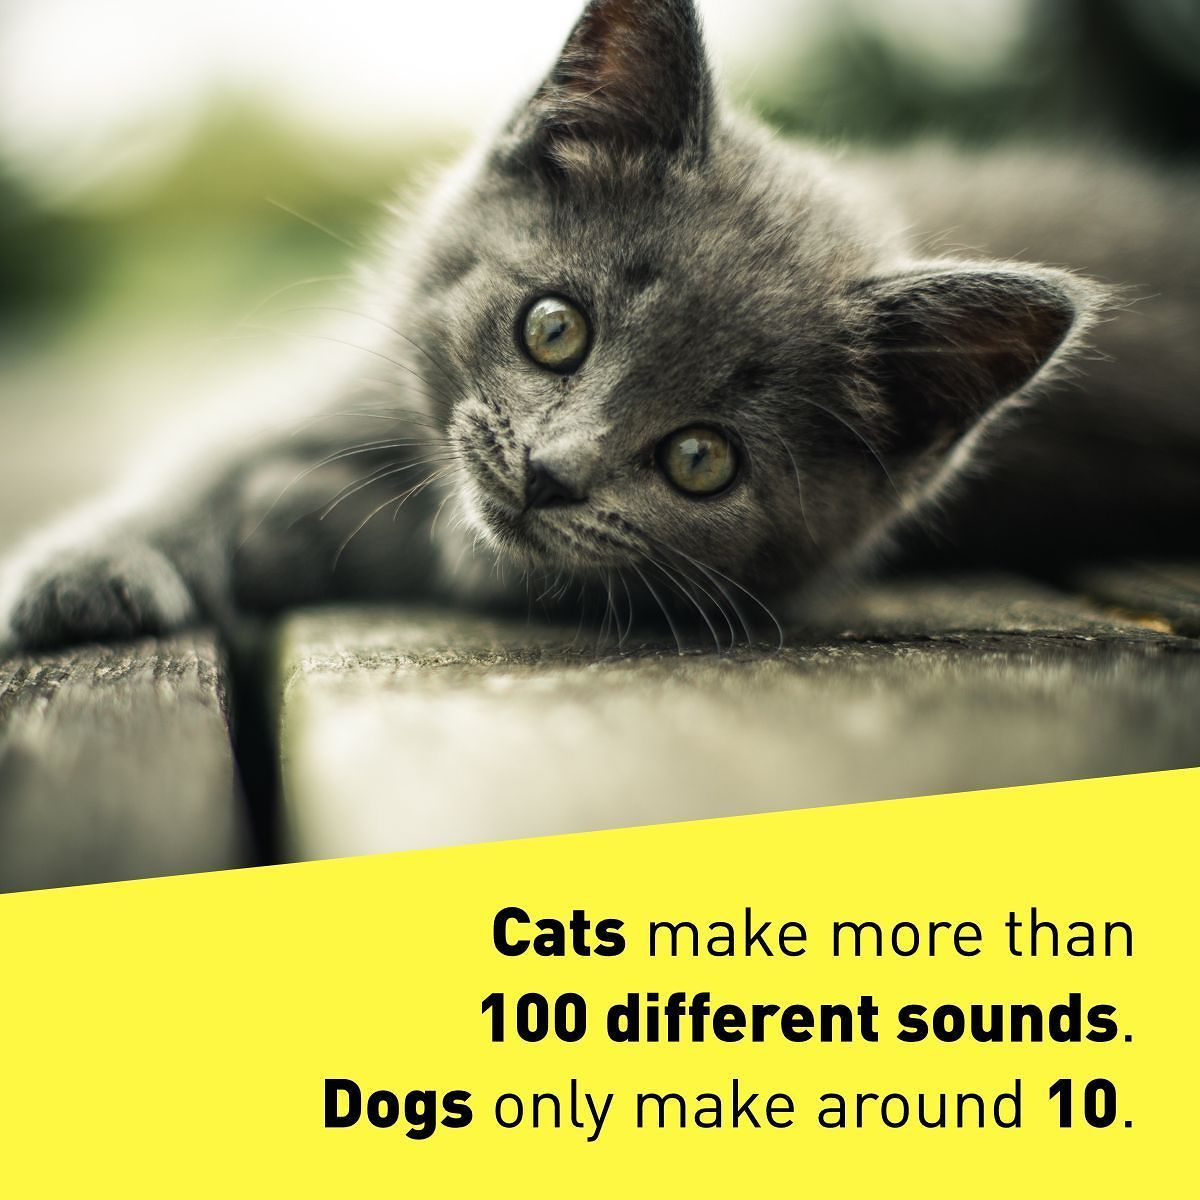 meow cats fact cute adorable science facts factoftheday